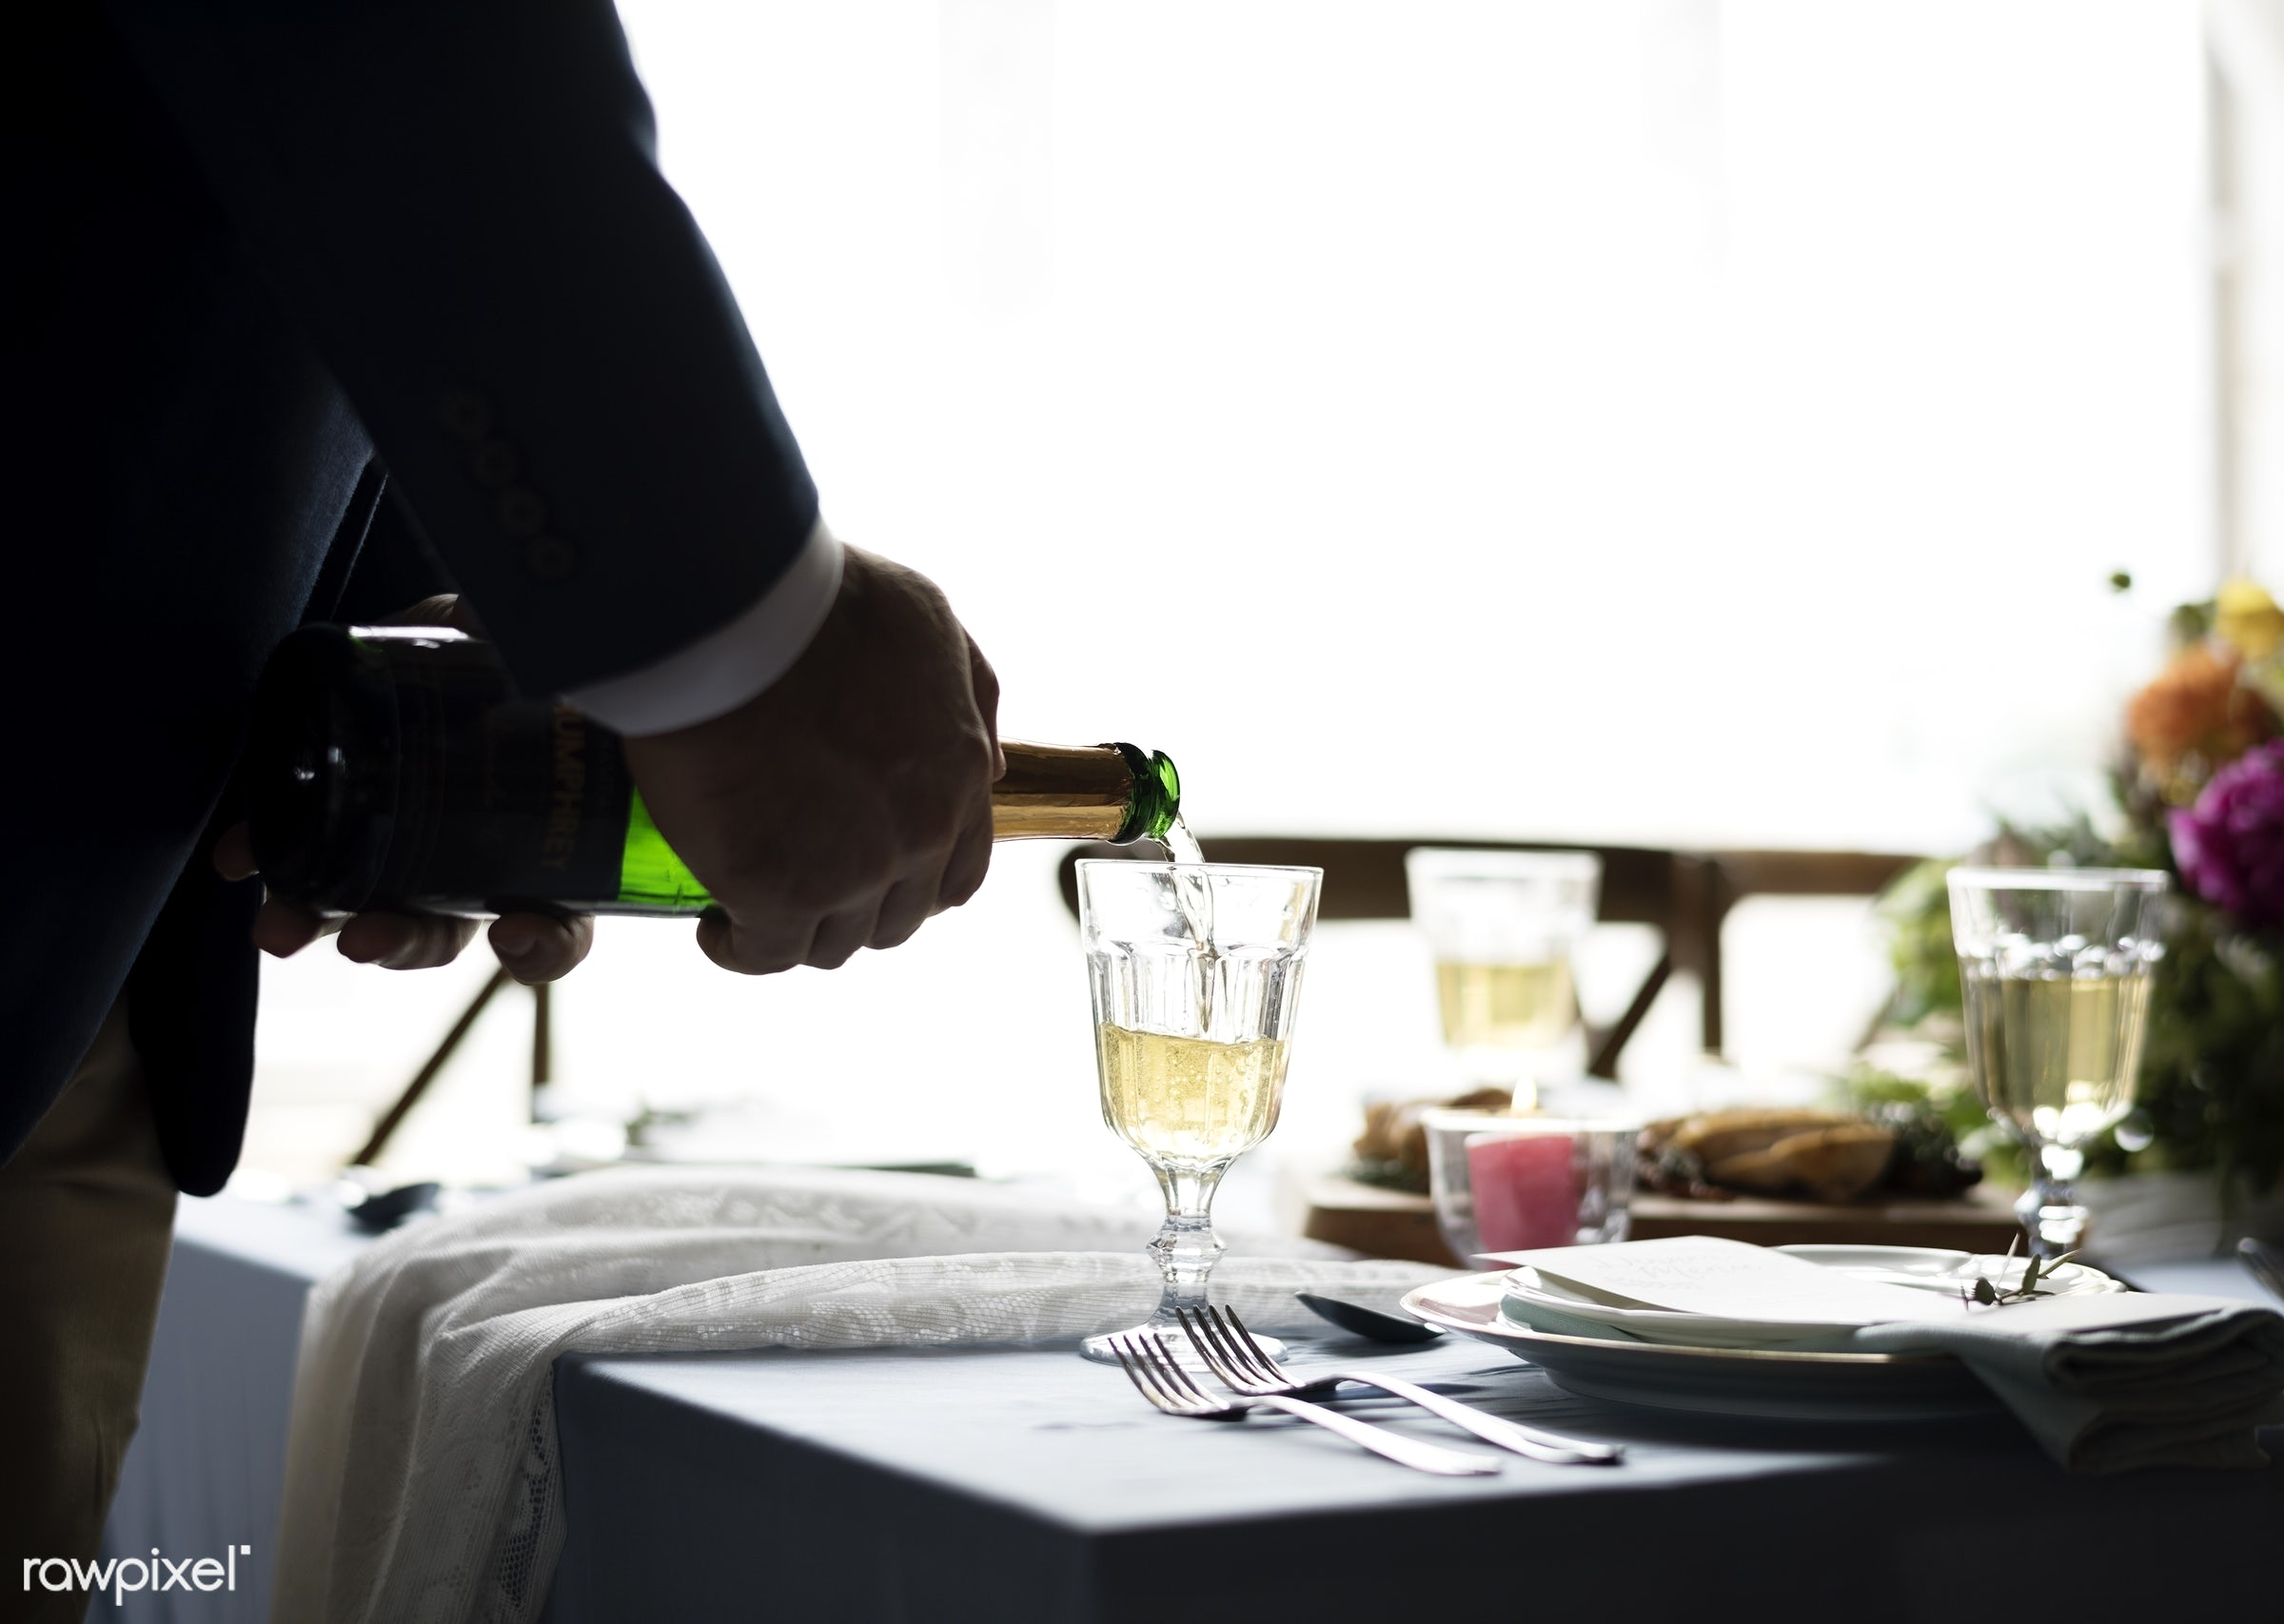 person, glasses, holding, party, setting, hands, drink, pouring, banquet, closeup, champagne, table setting, bottle,...